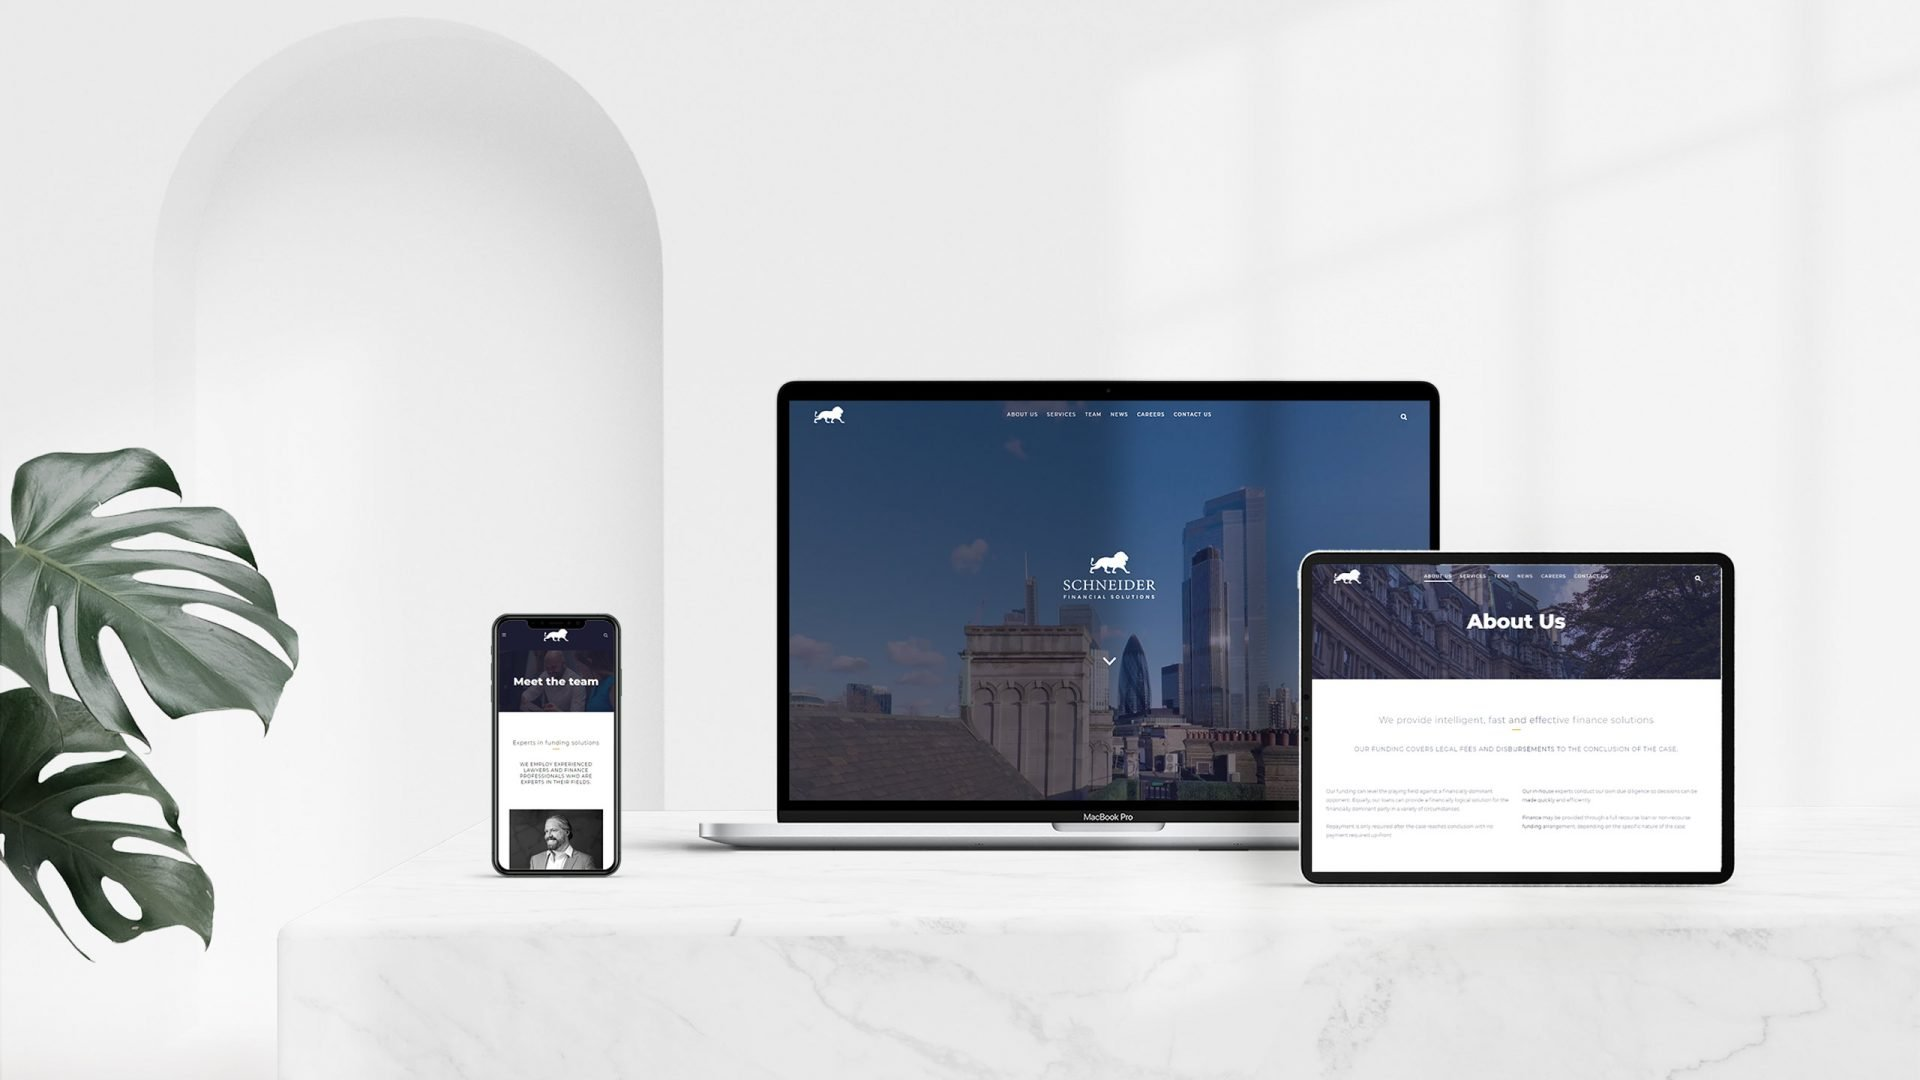 Crate47 Schneider Financial Services rebranding and website design - Web Devices